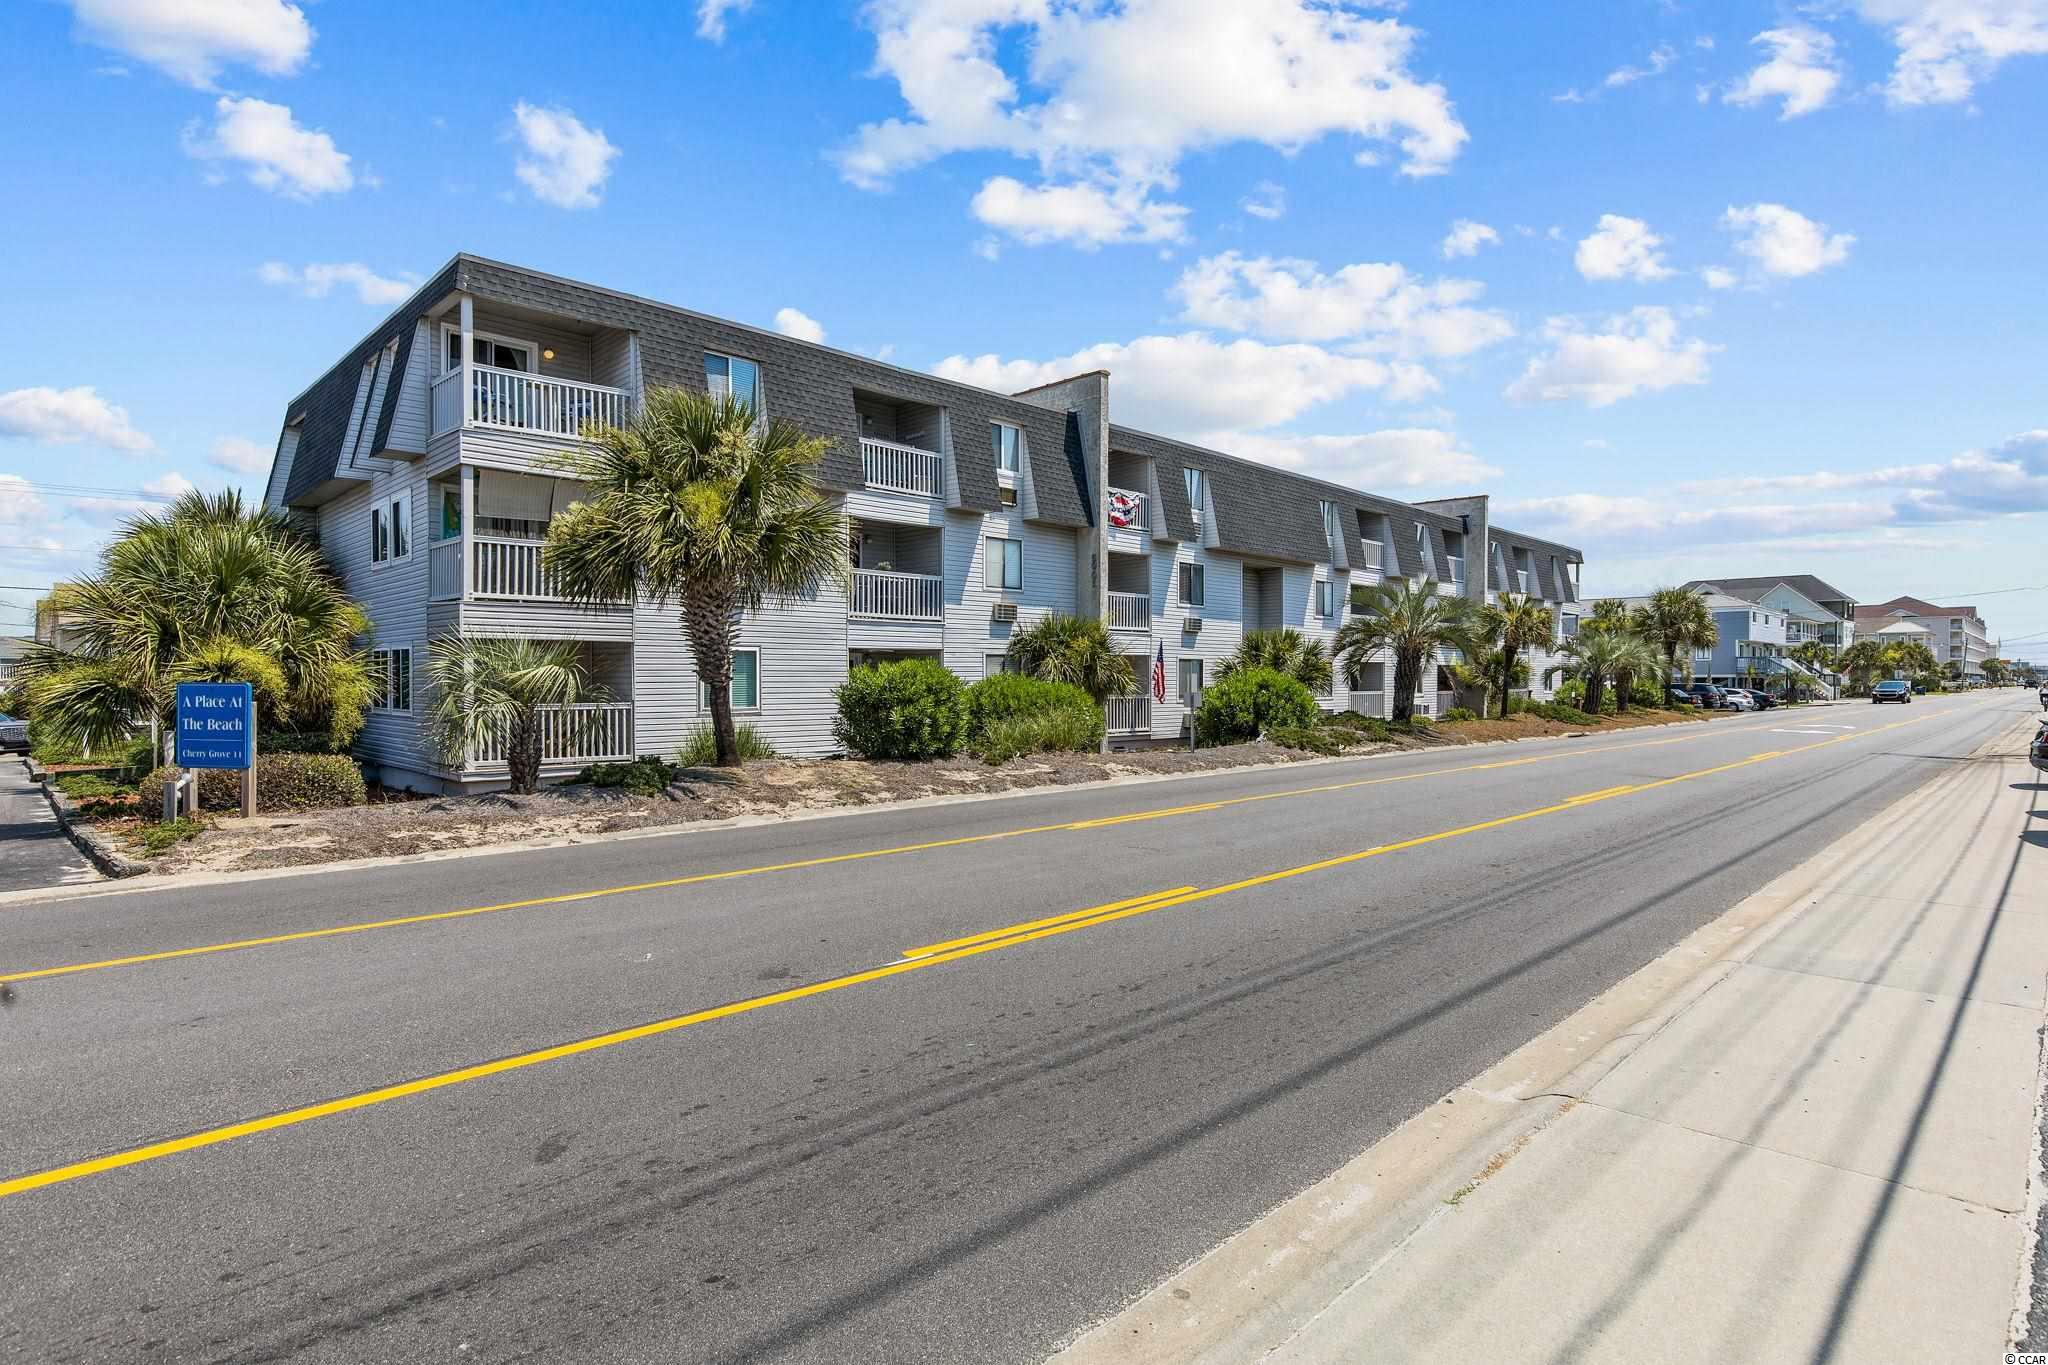 Rare two bedroom/two full bath unit in A Place at the Beach in charming Cherry Grove Beach.  This top floor unit comes completely furnished with nice colors and decor, lots of natural light, and features new waterproof/scratchproof vinyl plank flooring for ease of living here.  Your private balcony offers an amazing inlet/marsh view, with the ocean right across the street.  Pool onsite, laundry room onsite and lots of public beach access and parking available.  Only two blocks from the Cherry Grove Marina and Nature Preserve, and one mile from the Cherry Grove Pier.  Lots of good restaurants, shopping and entertainment close by.  Newer AC/Heat units, water heater and appliances.